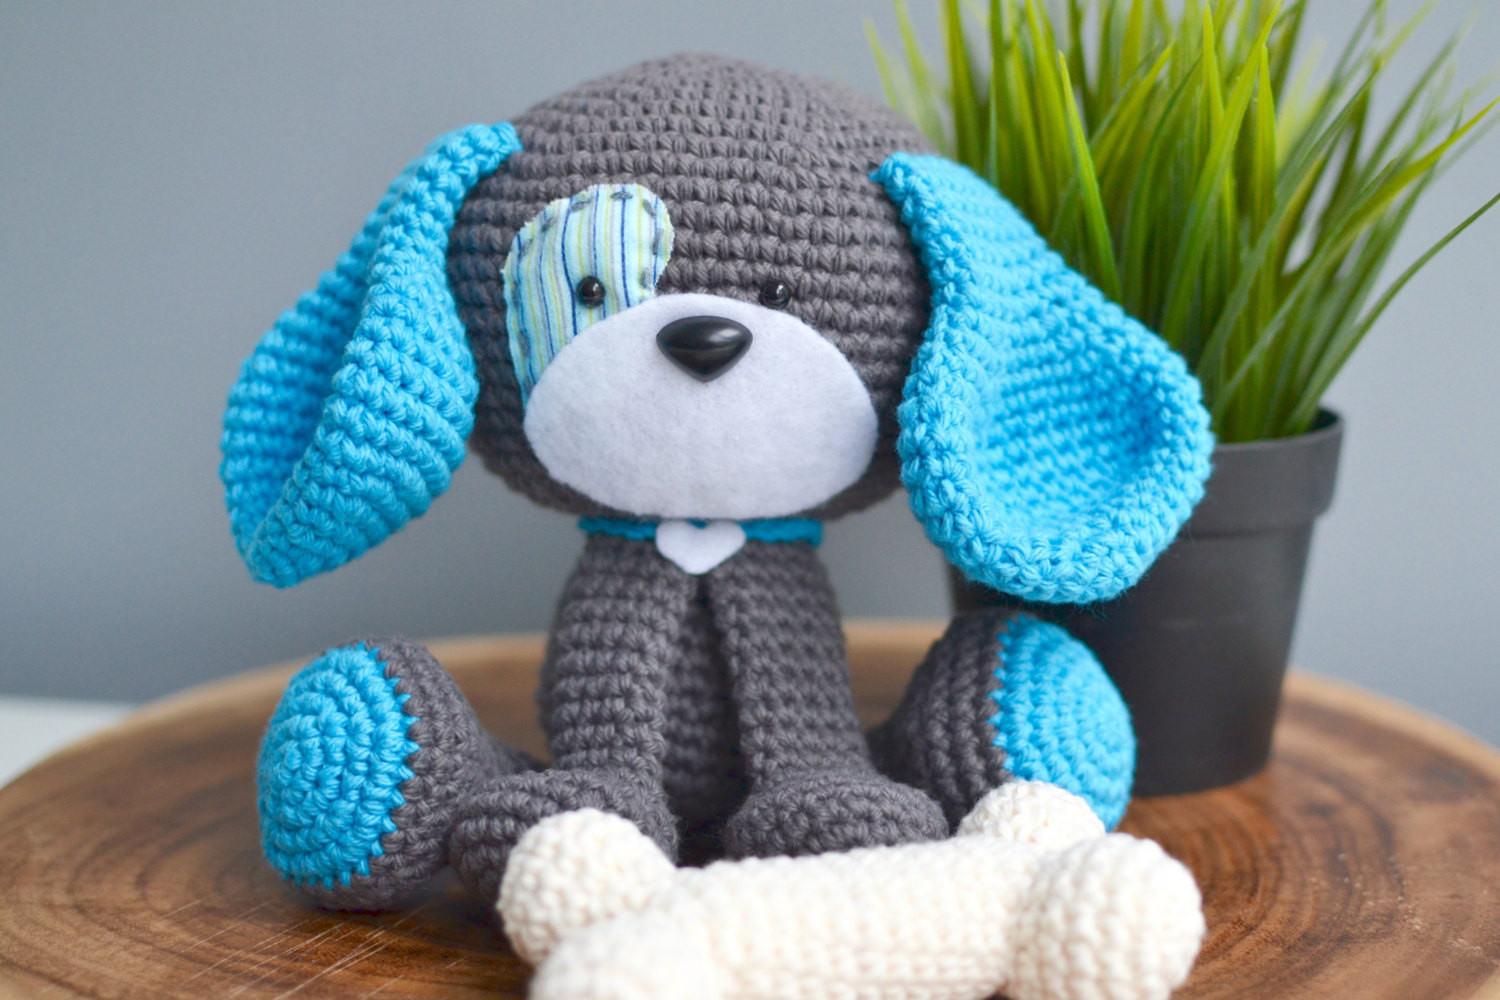 Crochet Dog Luxury Cute Dog Crochet Pattern Domino the Dog Amigurumi Crochet Of Perfect 50 Images Crochet Dog